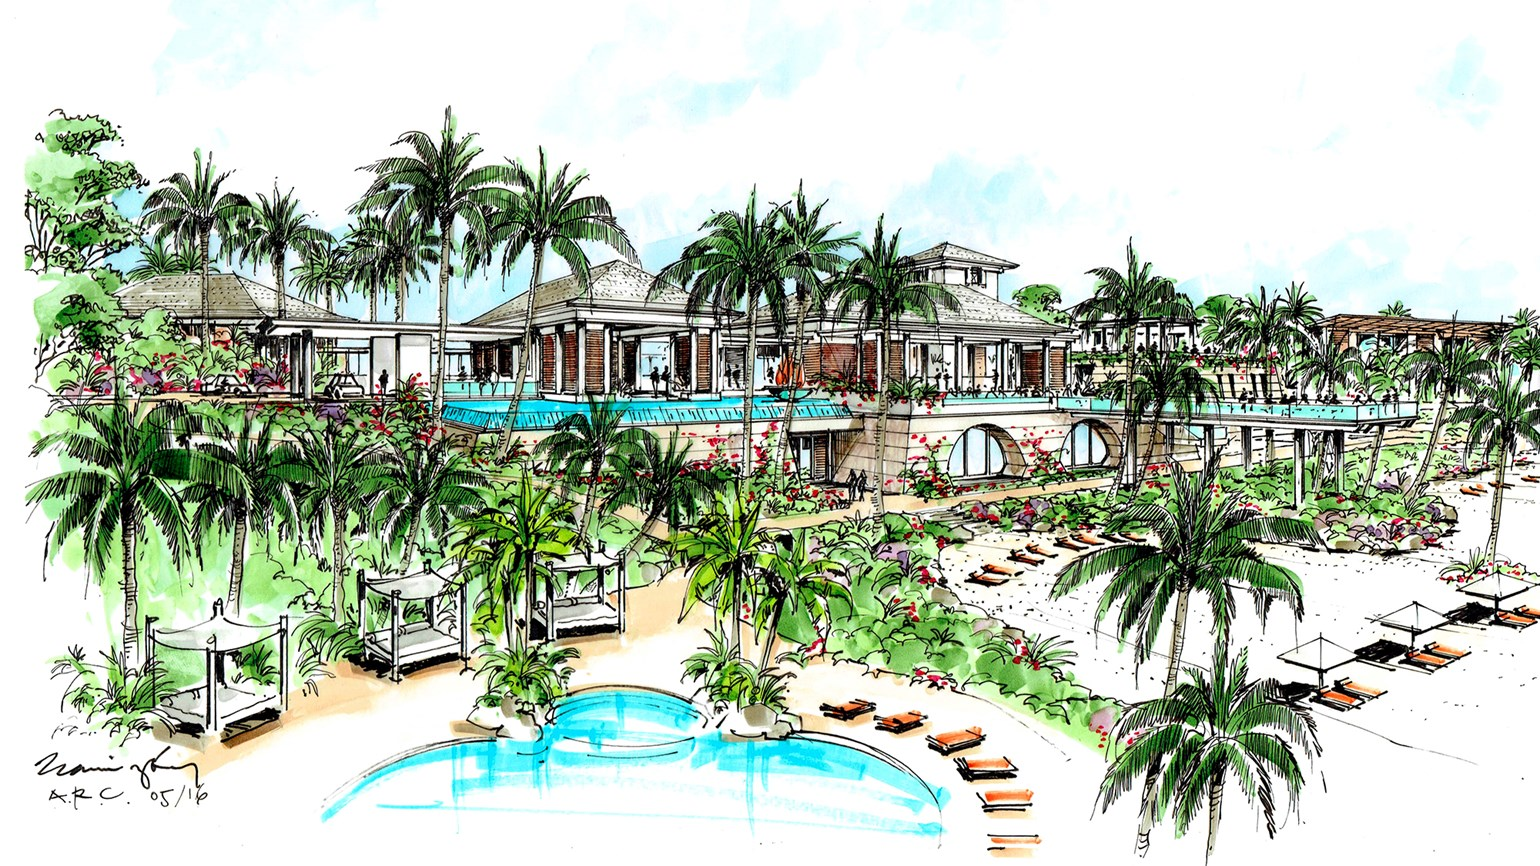 Ritz-Carlton to operate St. Lucia resort